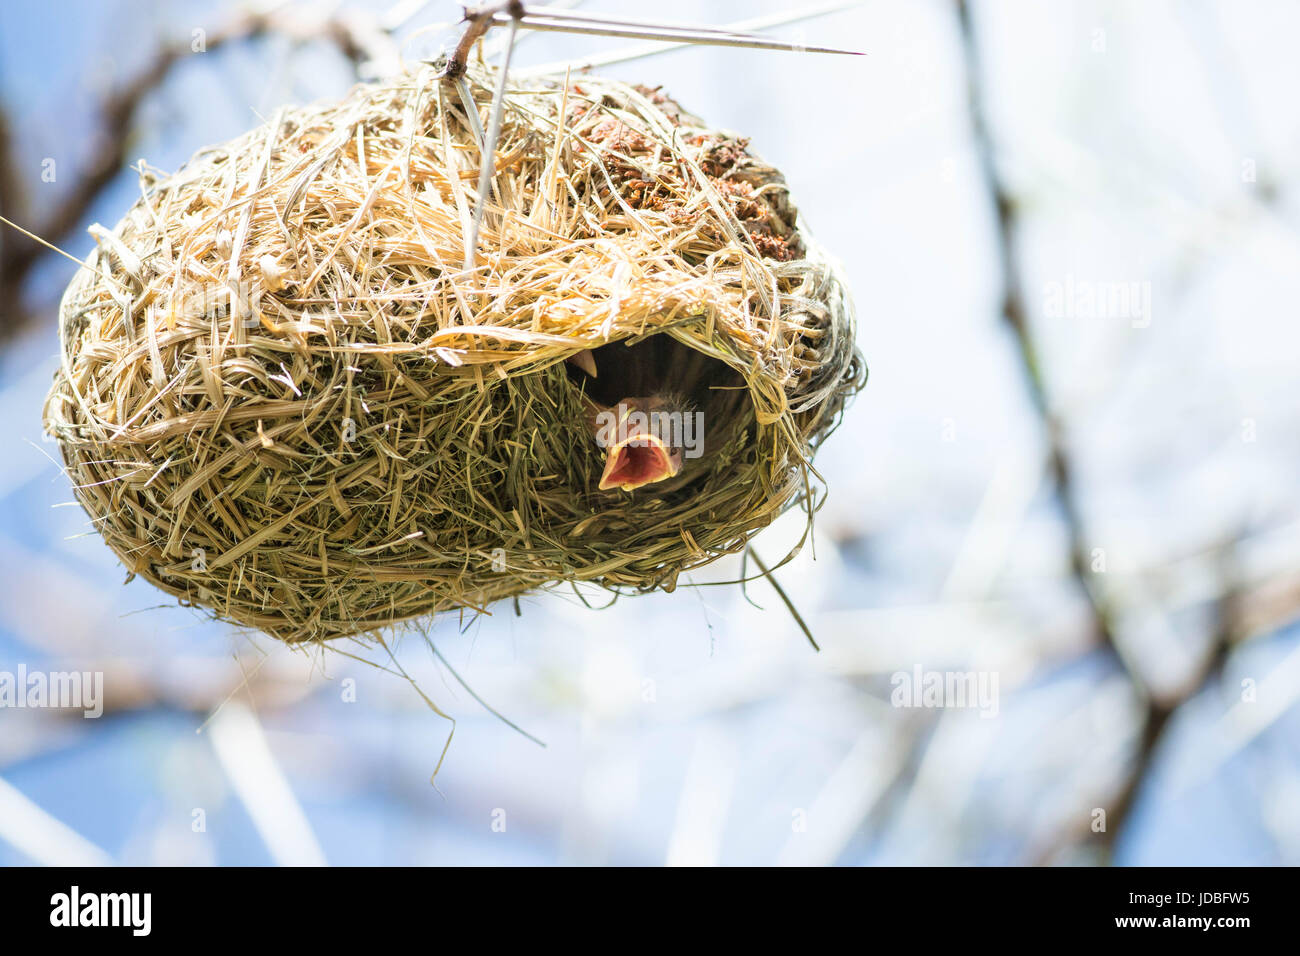 Weaver bird chicks looking out of the dry grass nest beaks open for food, Southern African - Stock Image